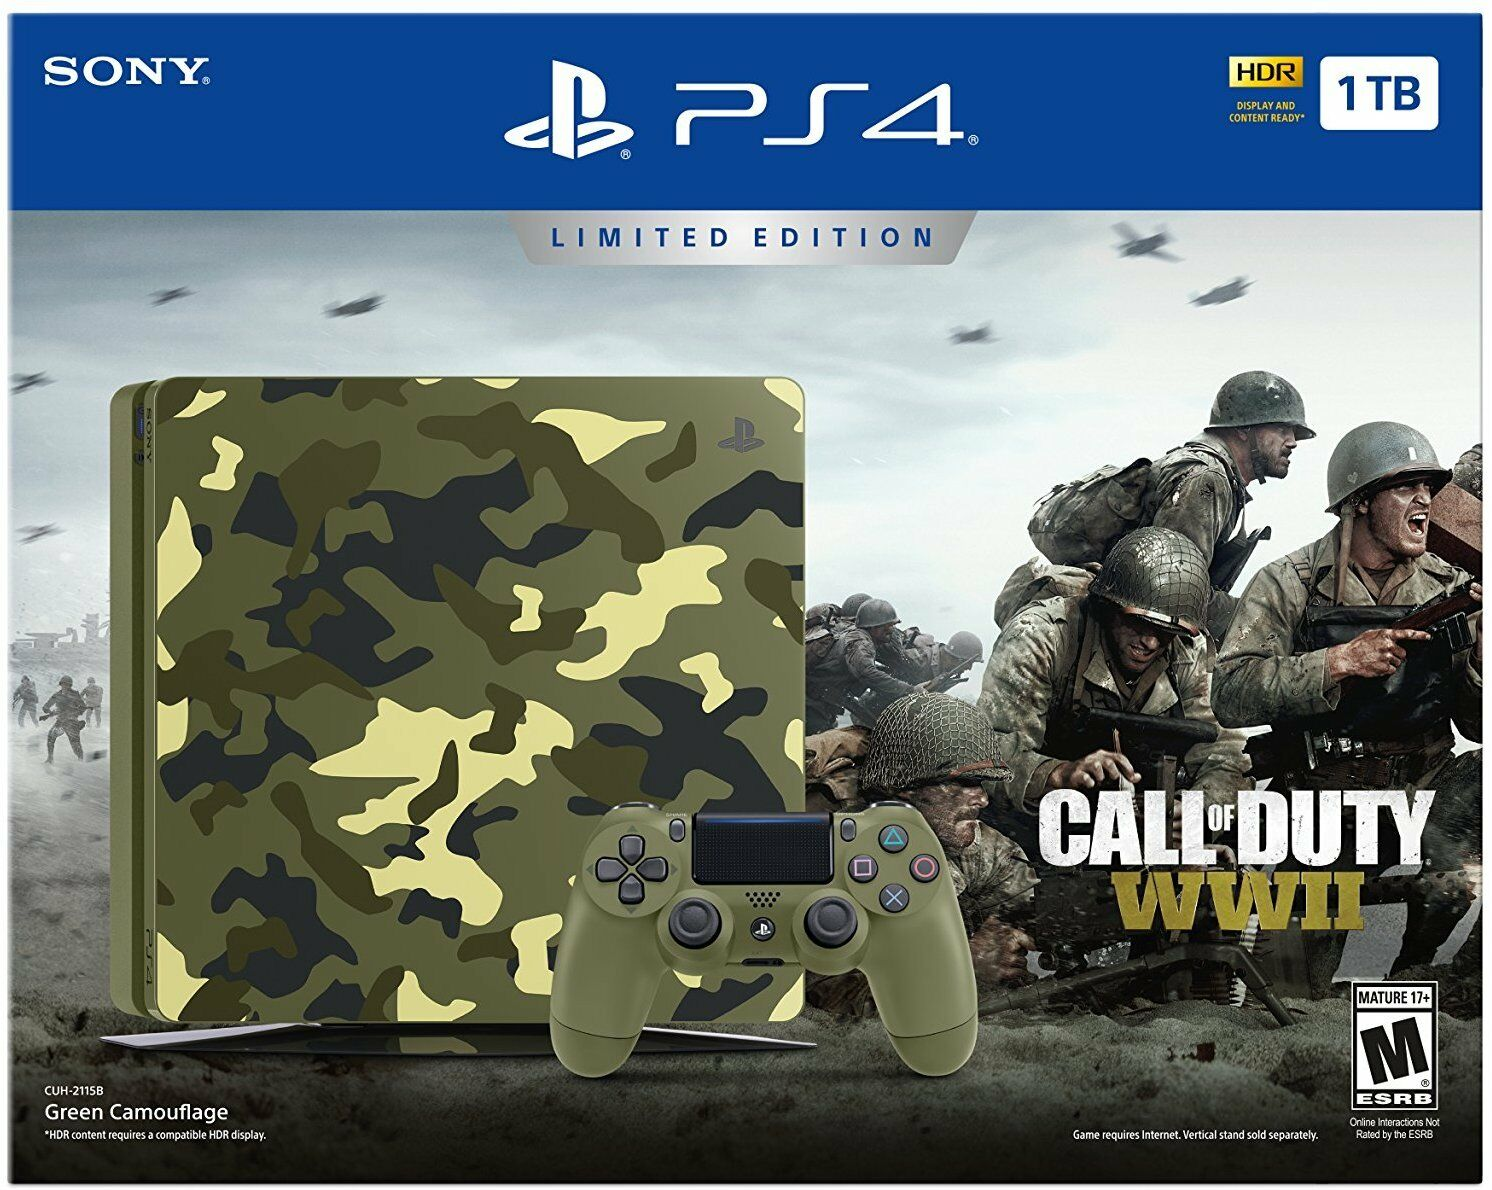 Playstation 4 - PlayStation 4 Slim 1TB Limited Edition Console - Call of Duty WWII Bundle NEW